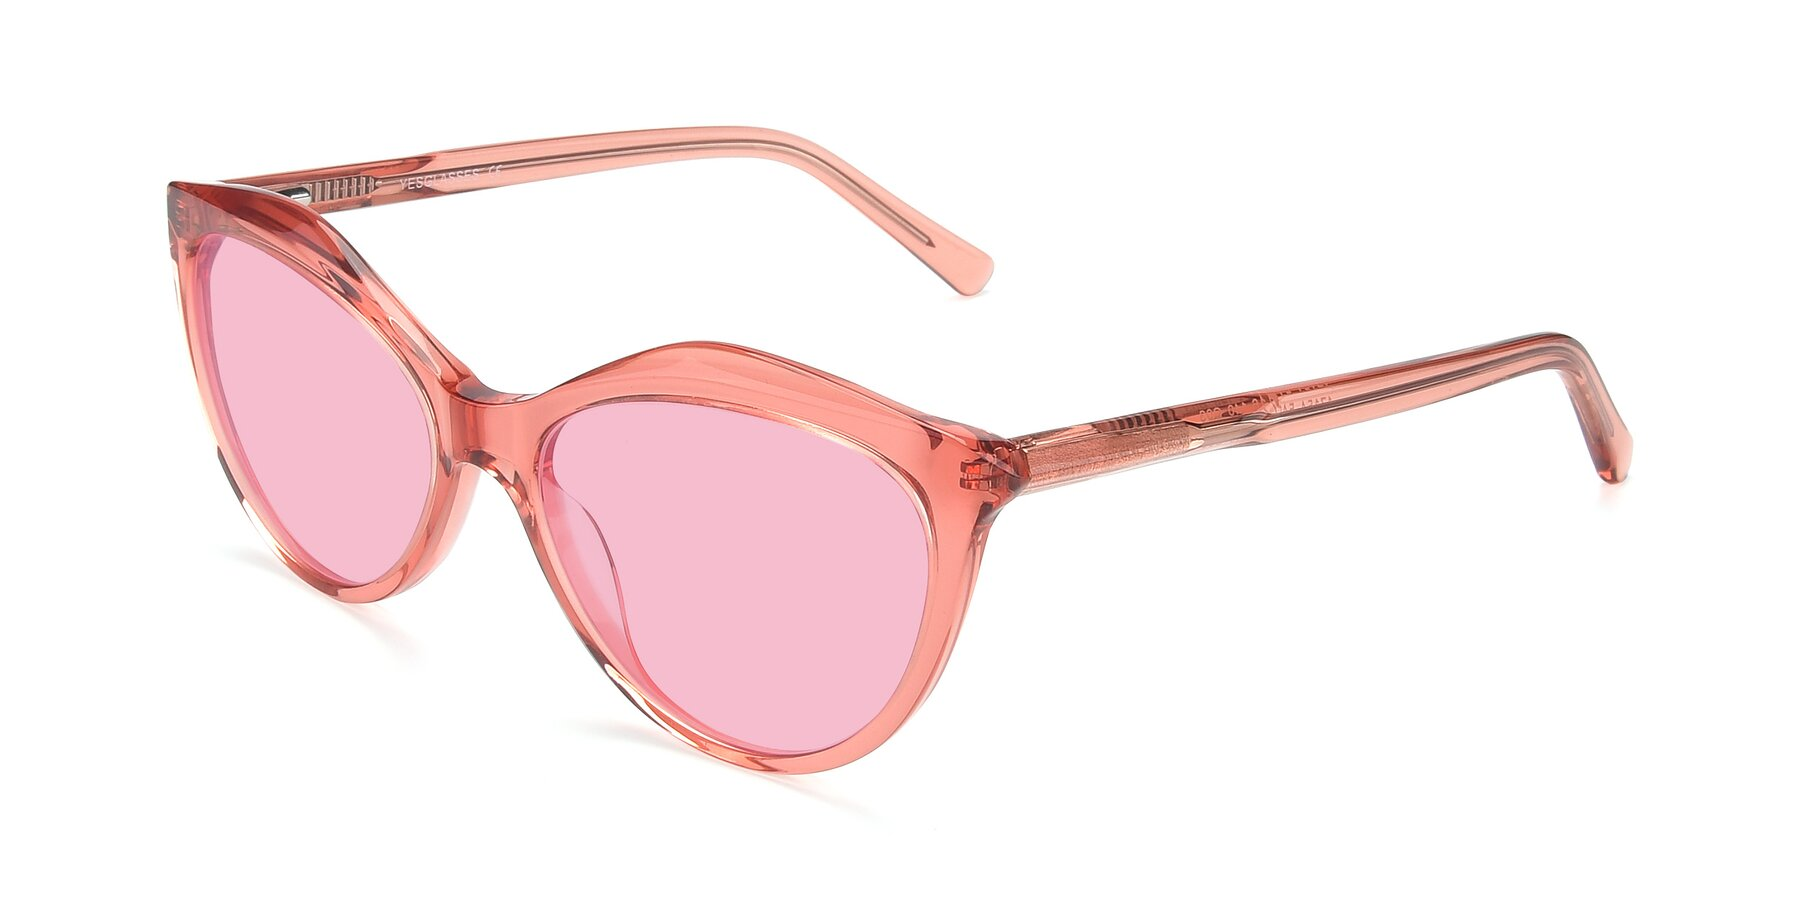 Angle of 17154 in Transparent Red with Medium Pink Tinted Lenses